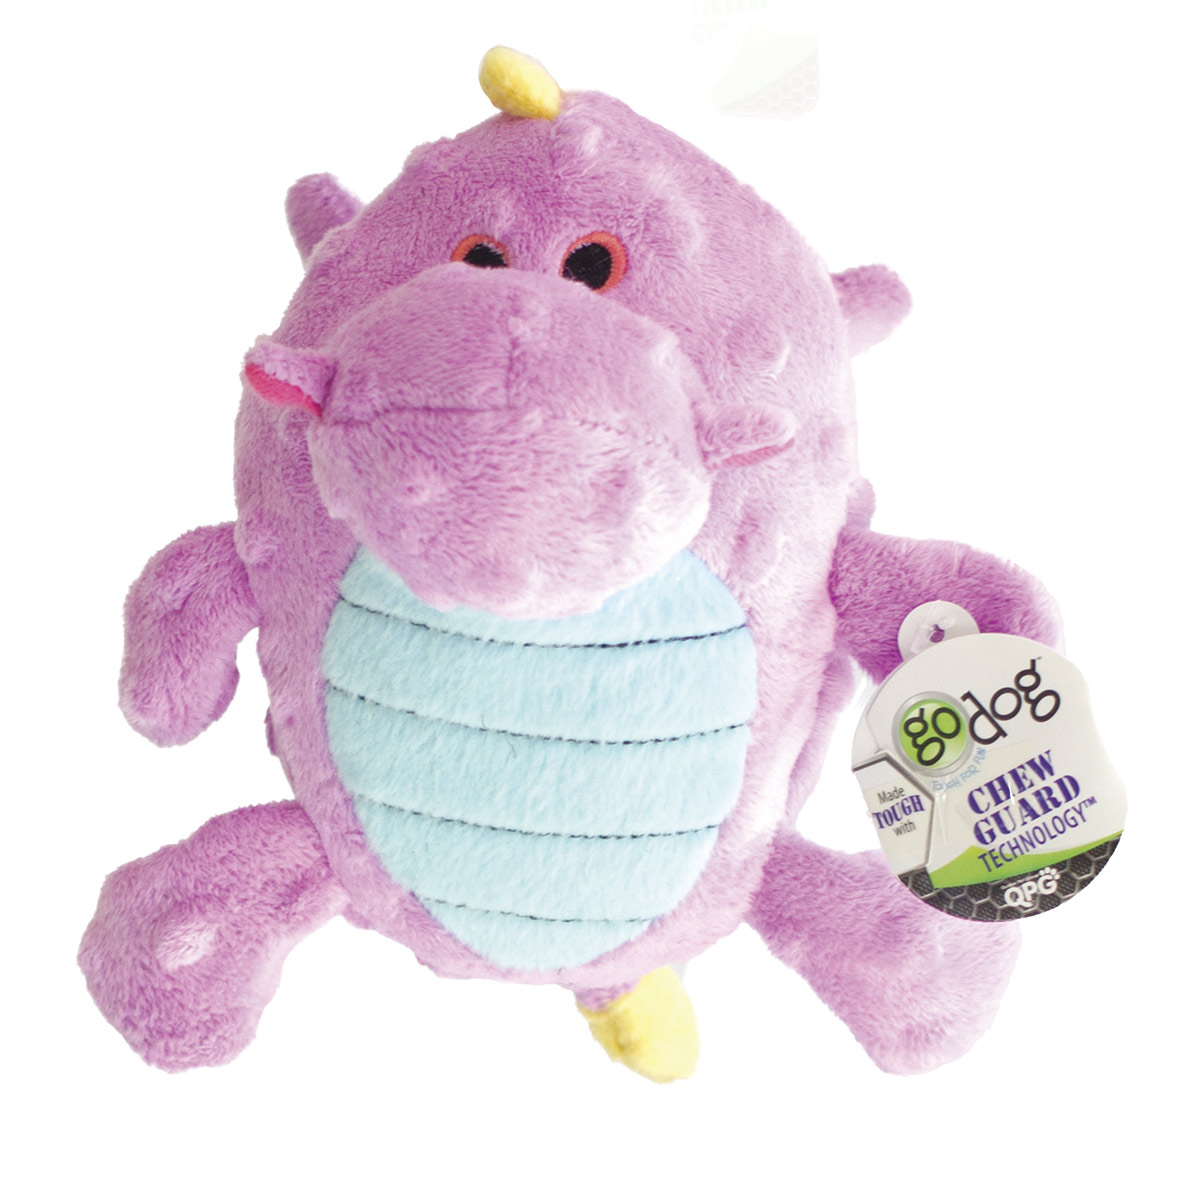 Small Violet goDog Dragons Grunters Dog Toy with Chew Guard